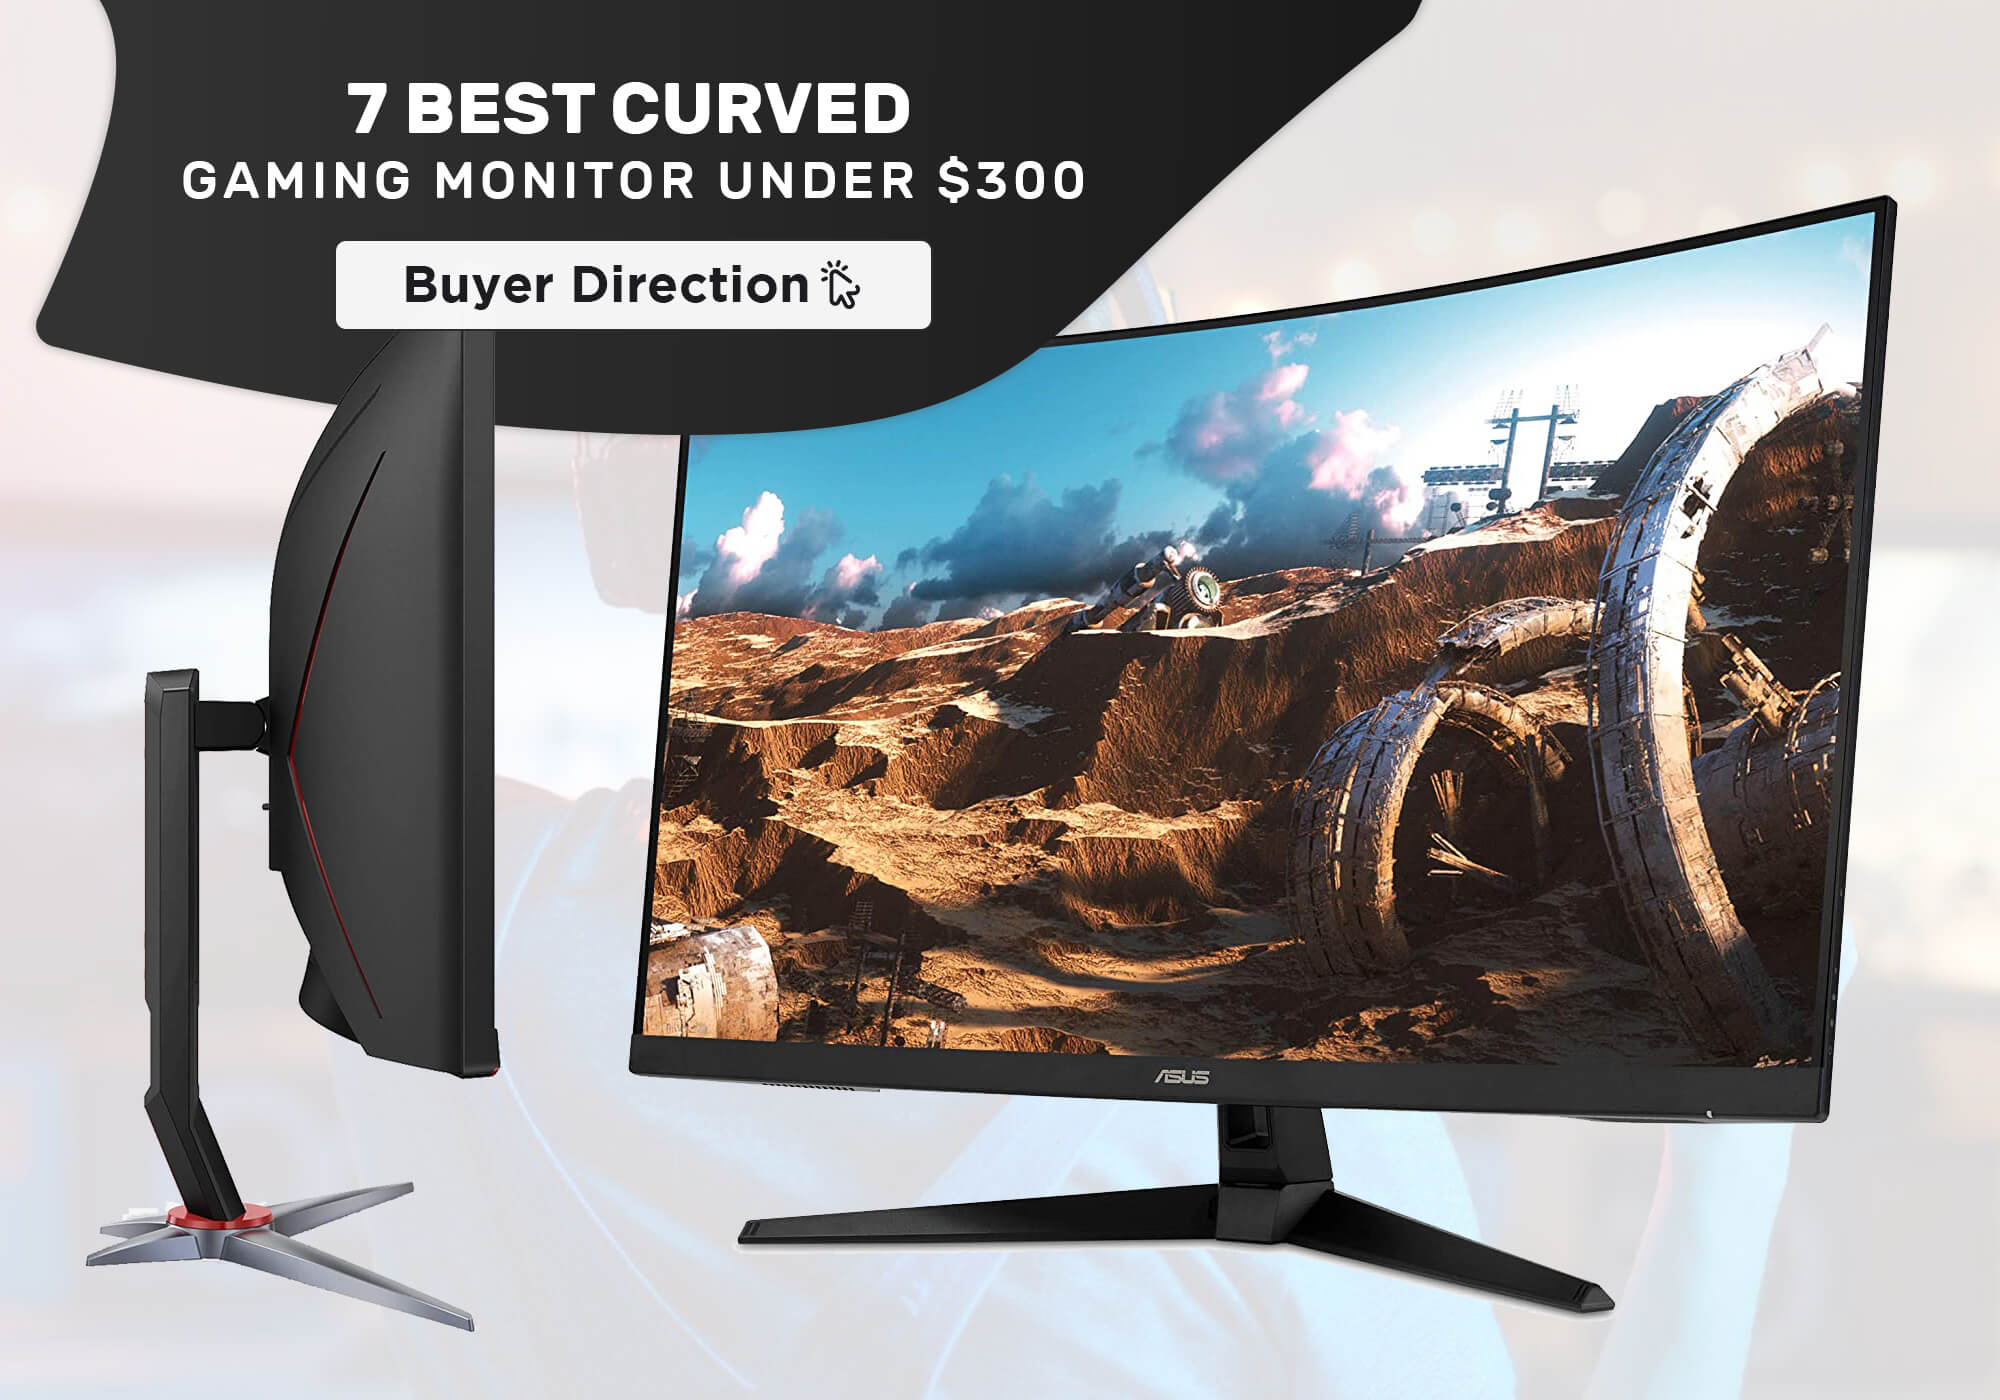 7 Best Curved Gaming Monitors under $300 in 2021